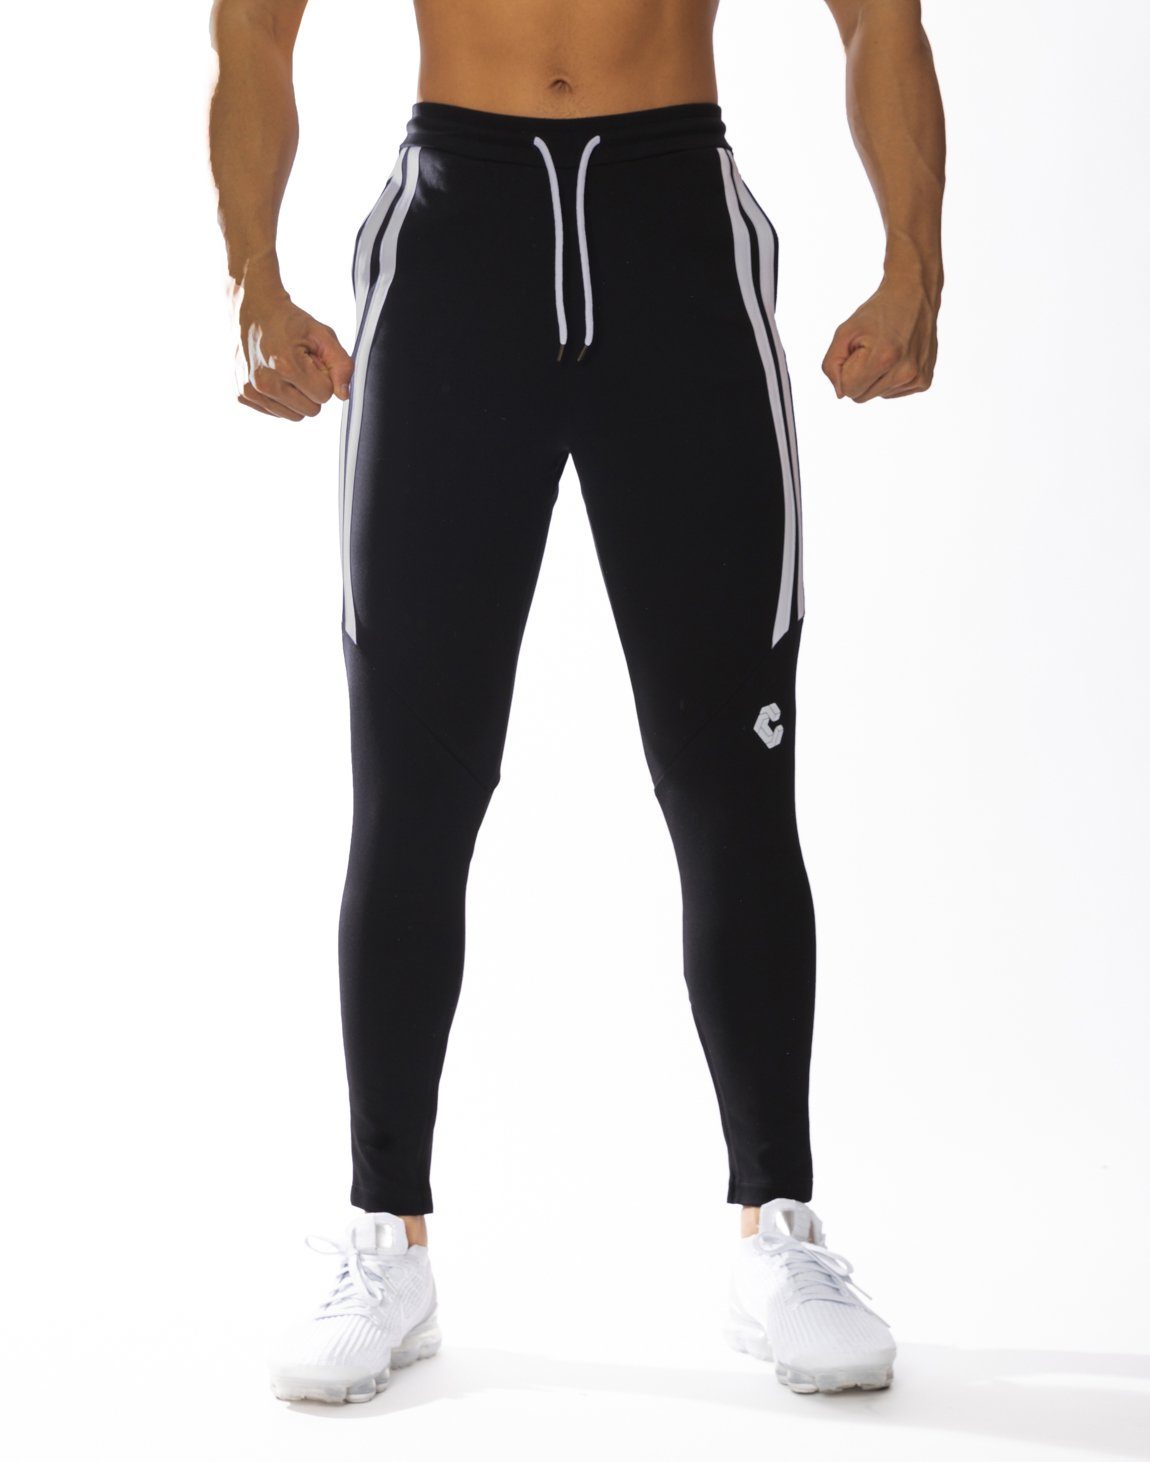 <img class='new_mark_img1' src='https://img.shop-pro.jp/img/new/icons55.gif' style='border:none;display:inline;margin:0px;padding:0px;width:auto;' />CRONOS HALF 2STRIPE CALF LOG PANTS 【BLACK】